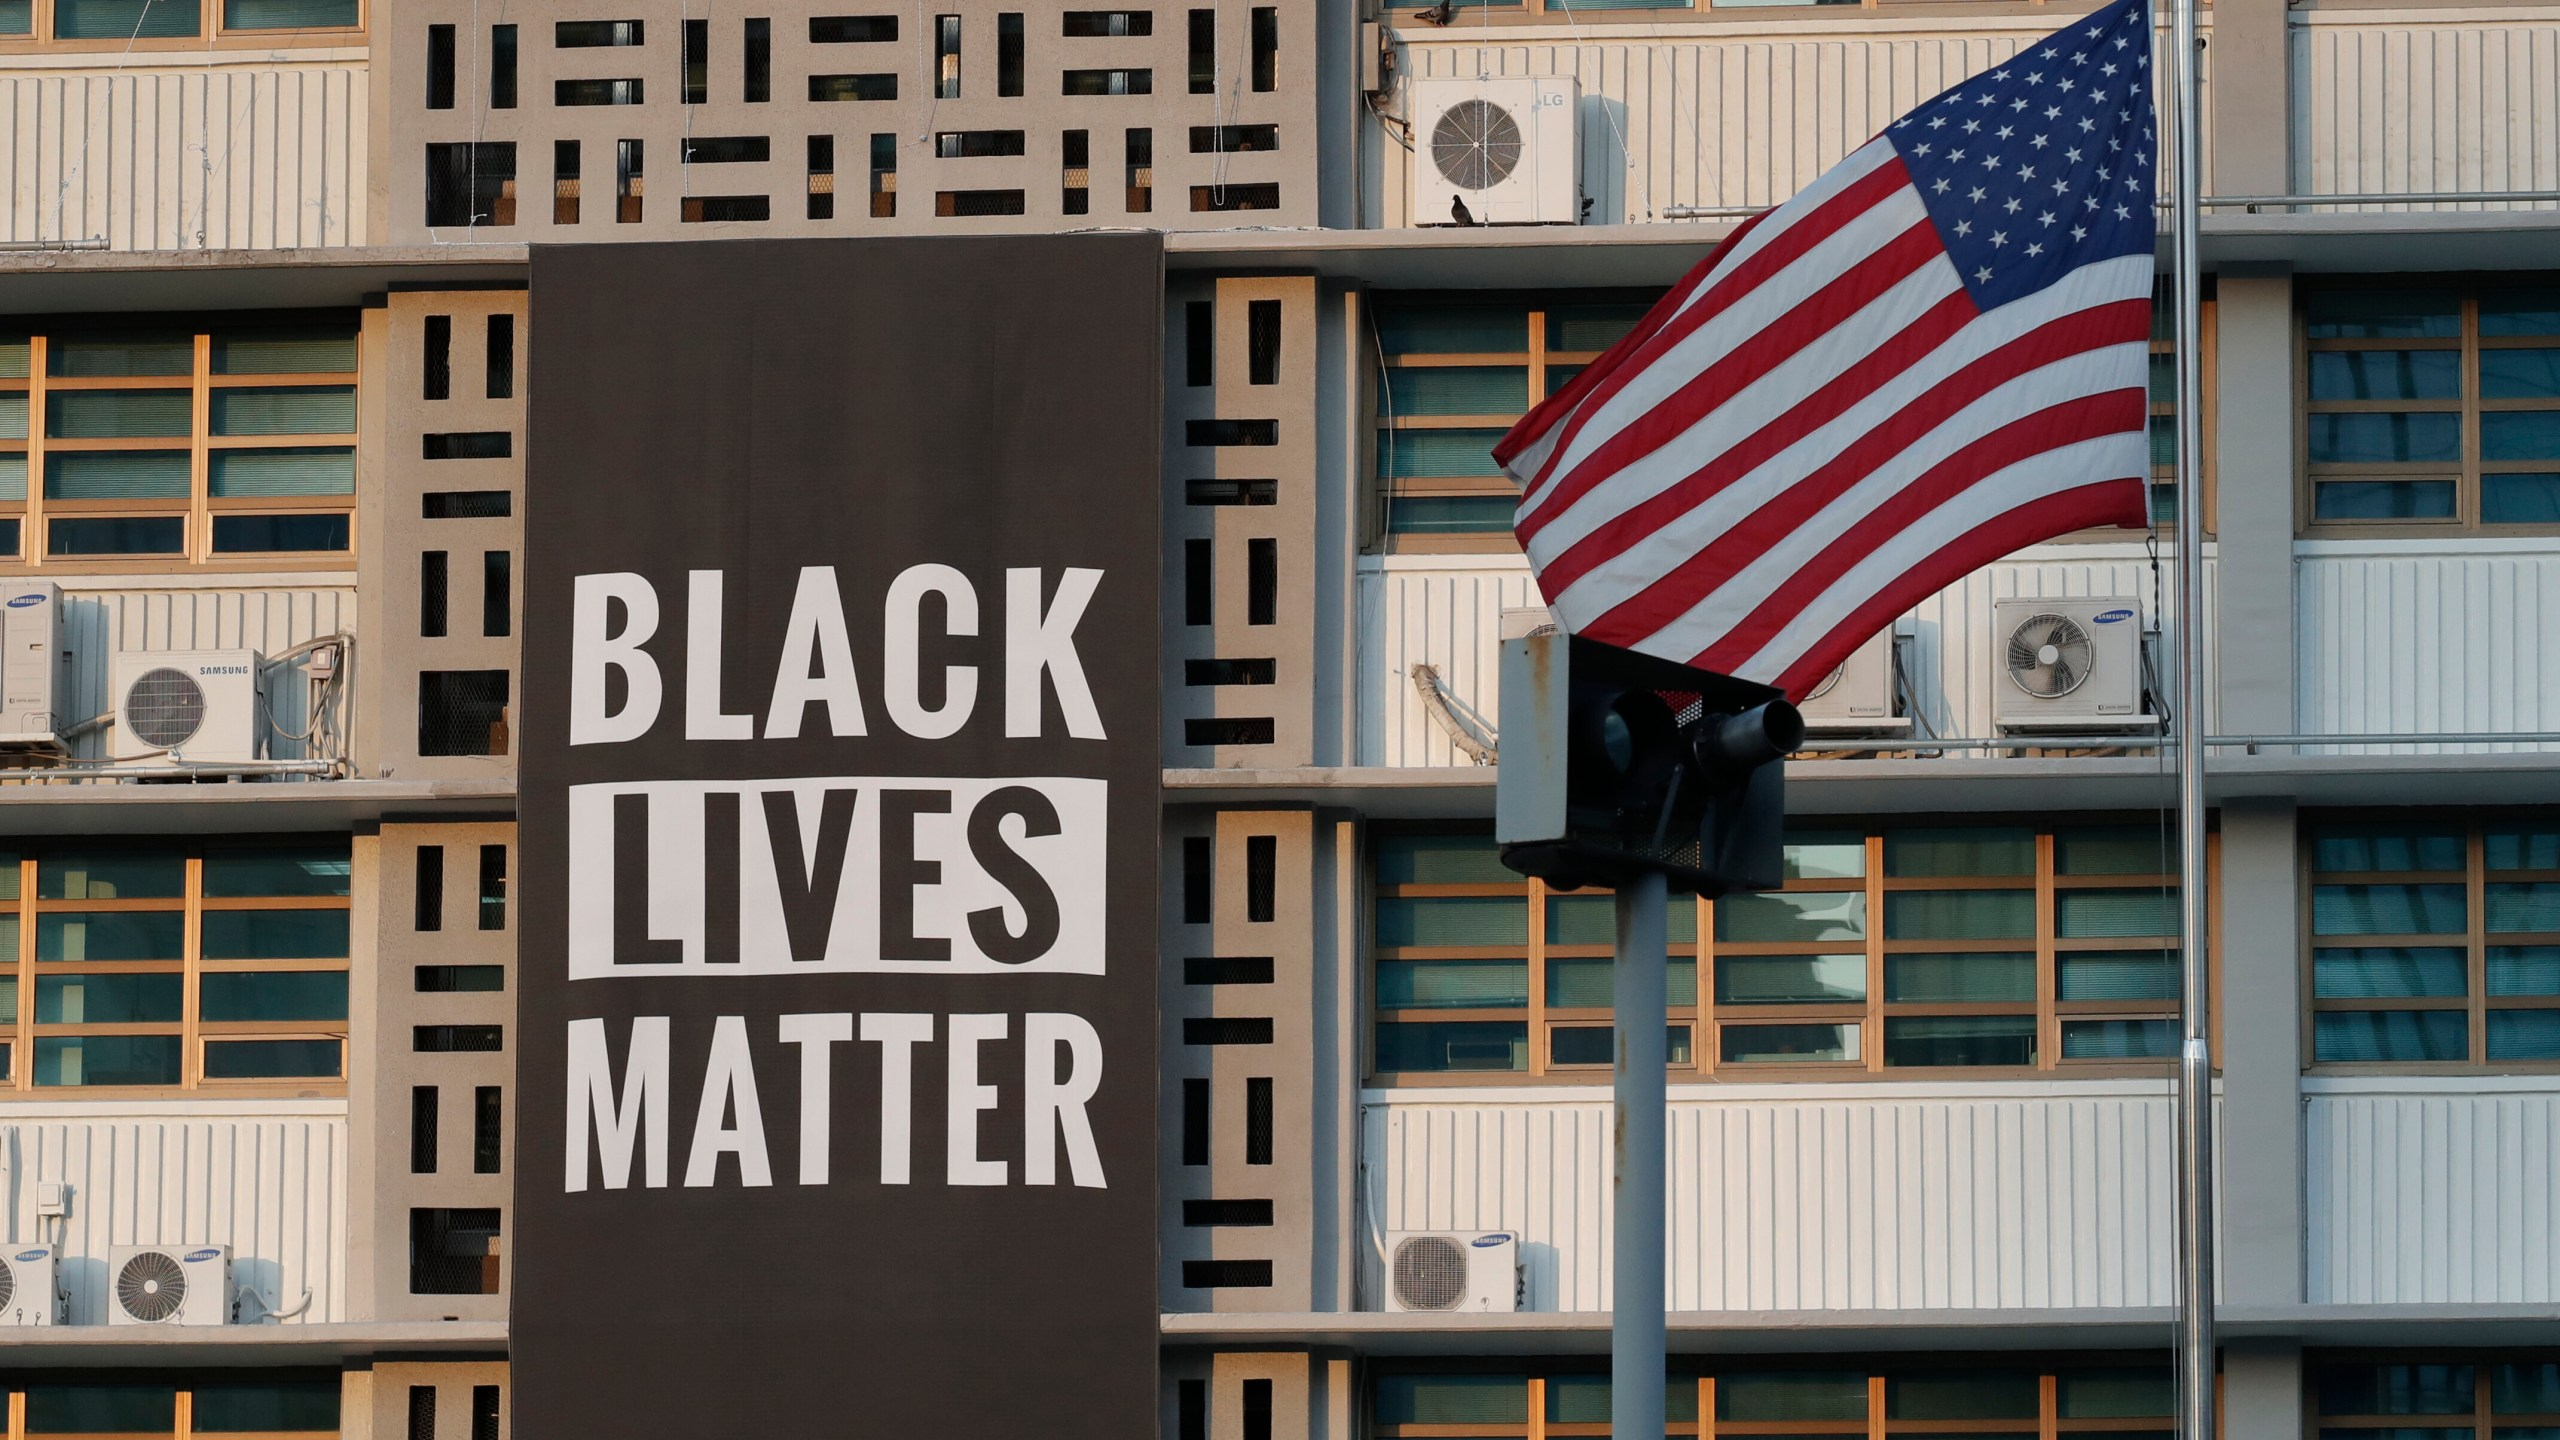 Black Lives Matter sign next to an American Flag